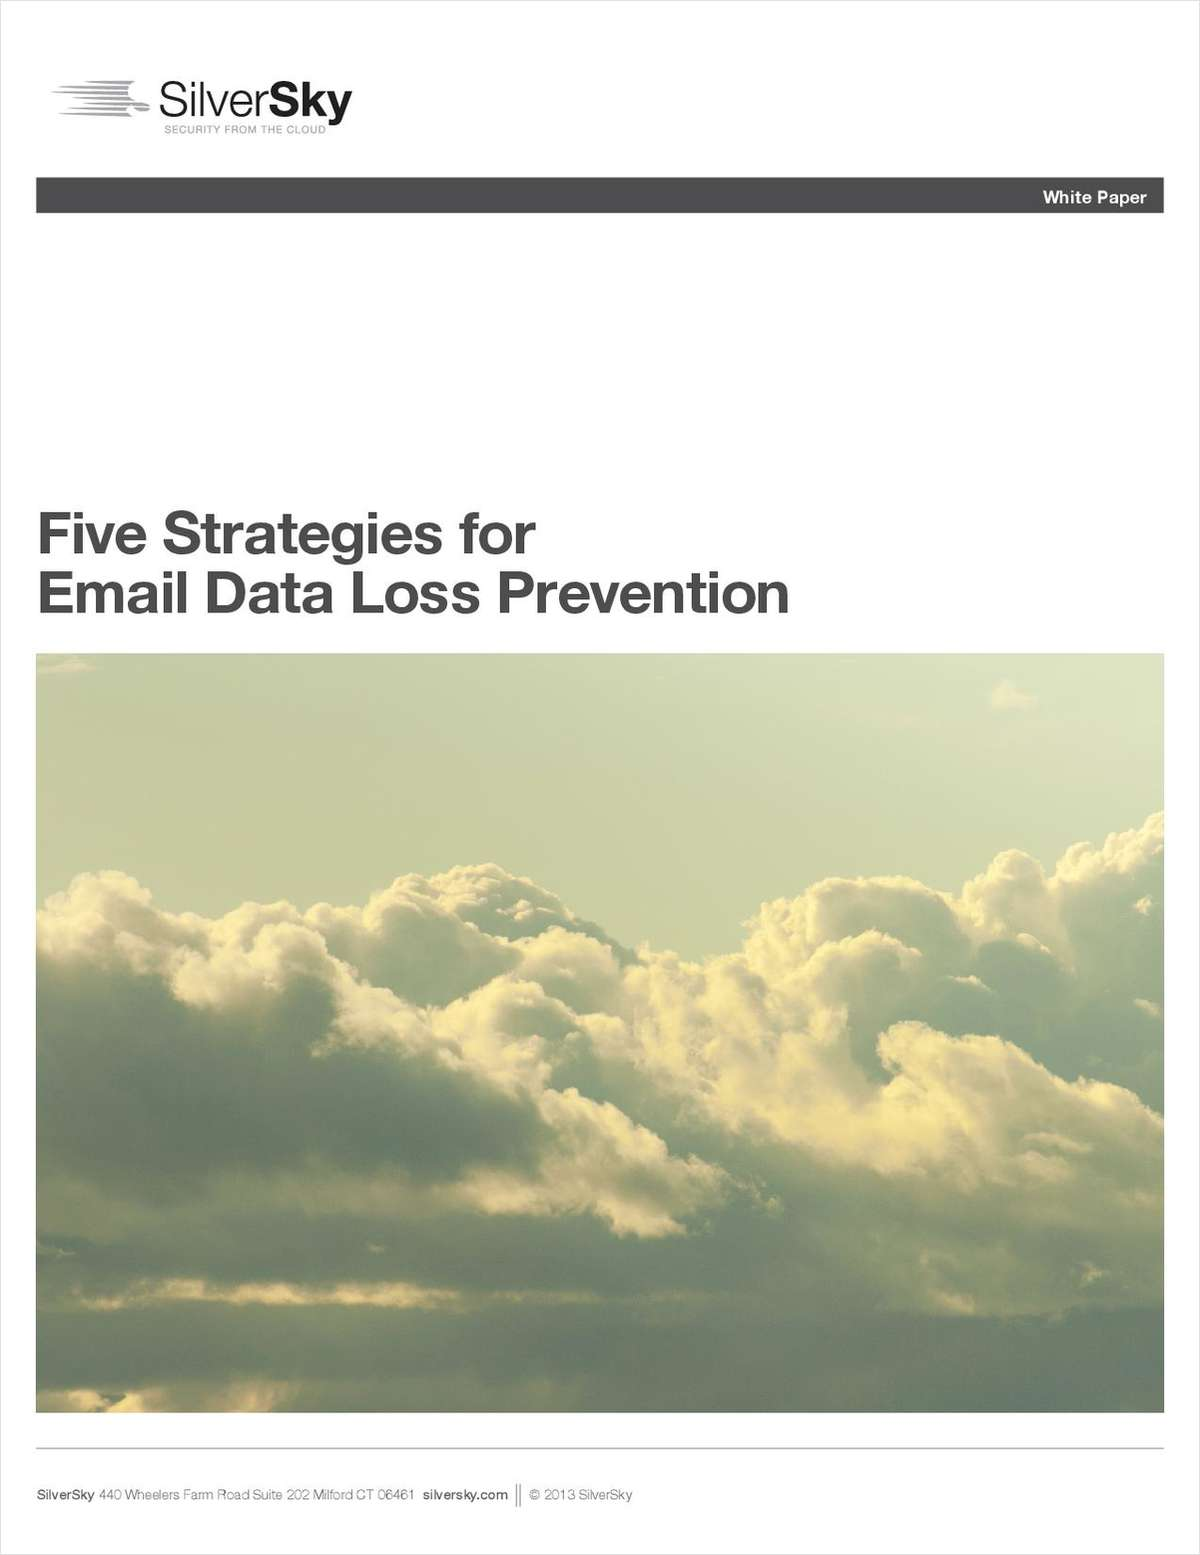 5 Strategies for Email Data Loss Prevention